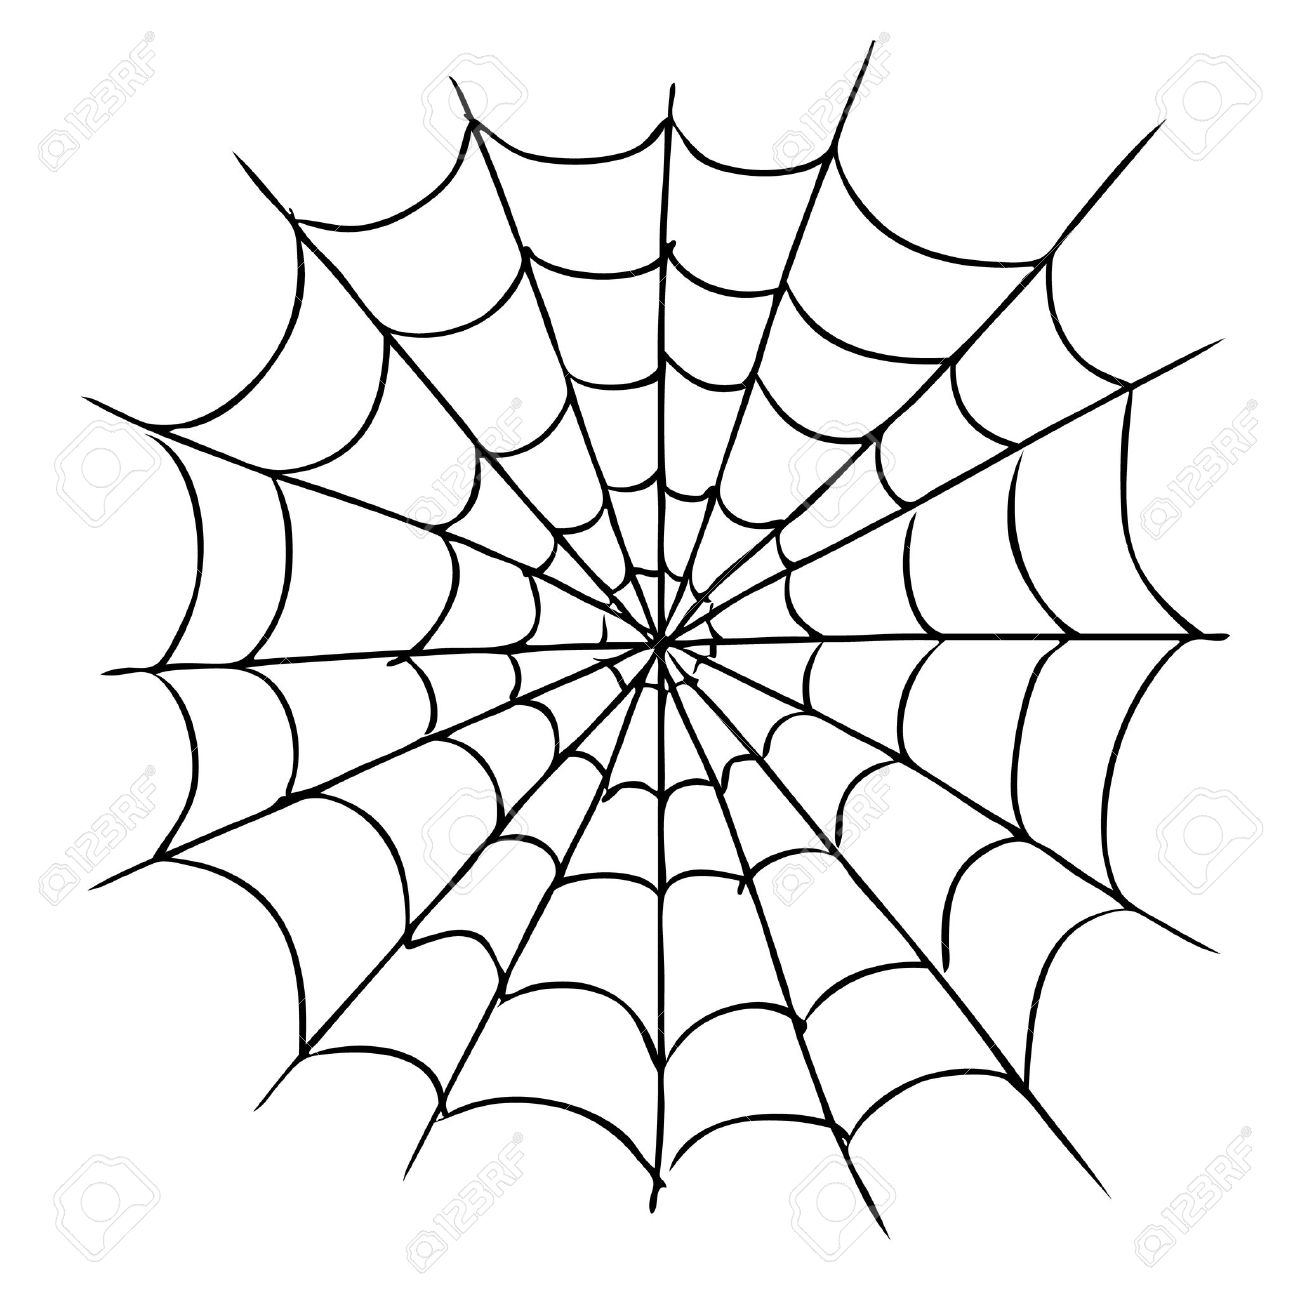 1300x1300 Spider Web Drawings How To Draw A Halloween Spider With Spiderweb